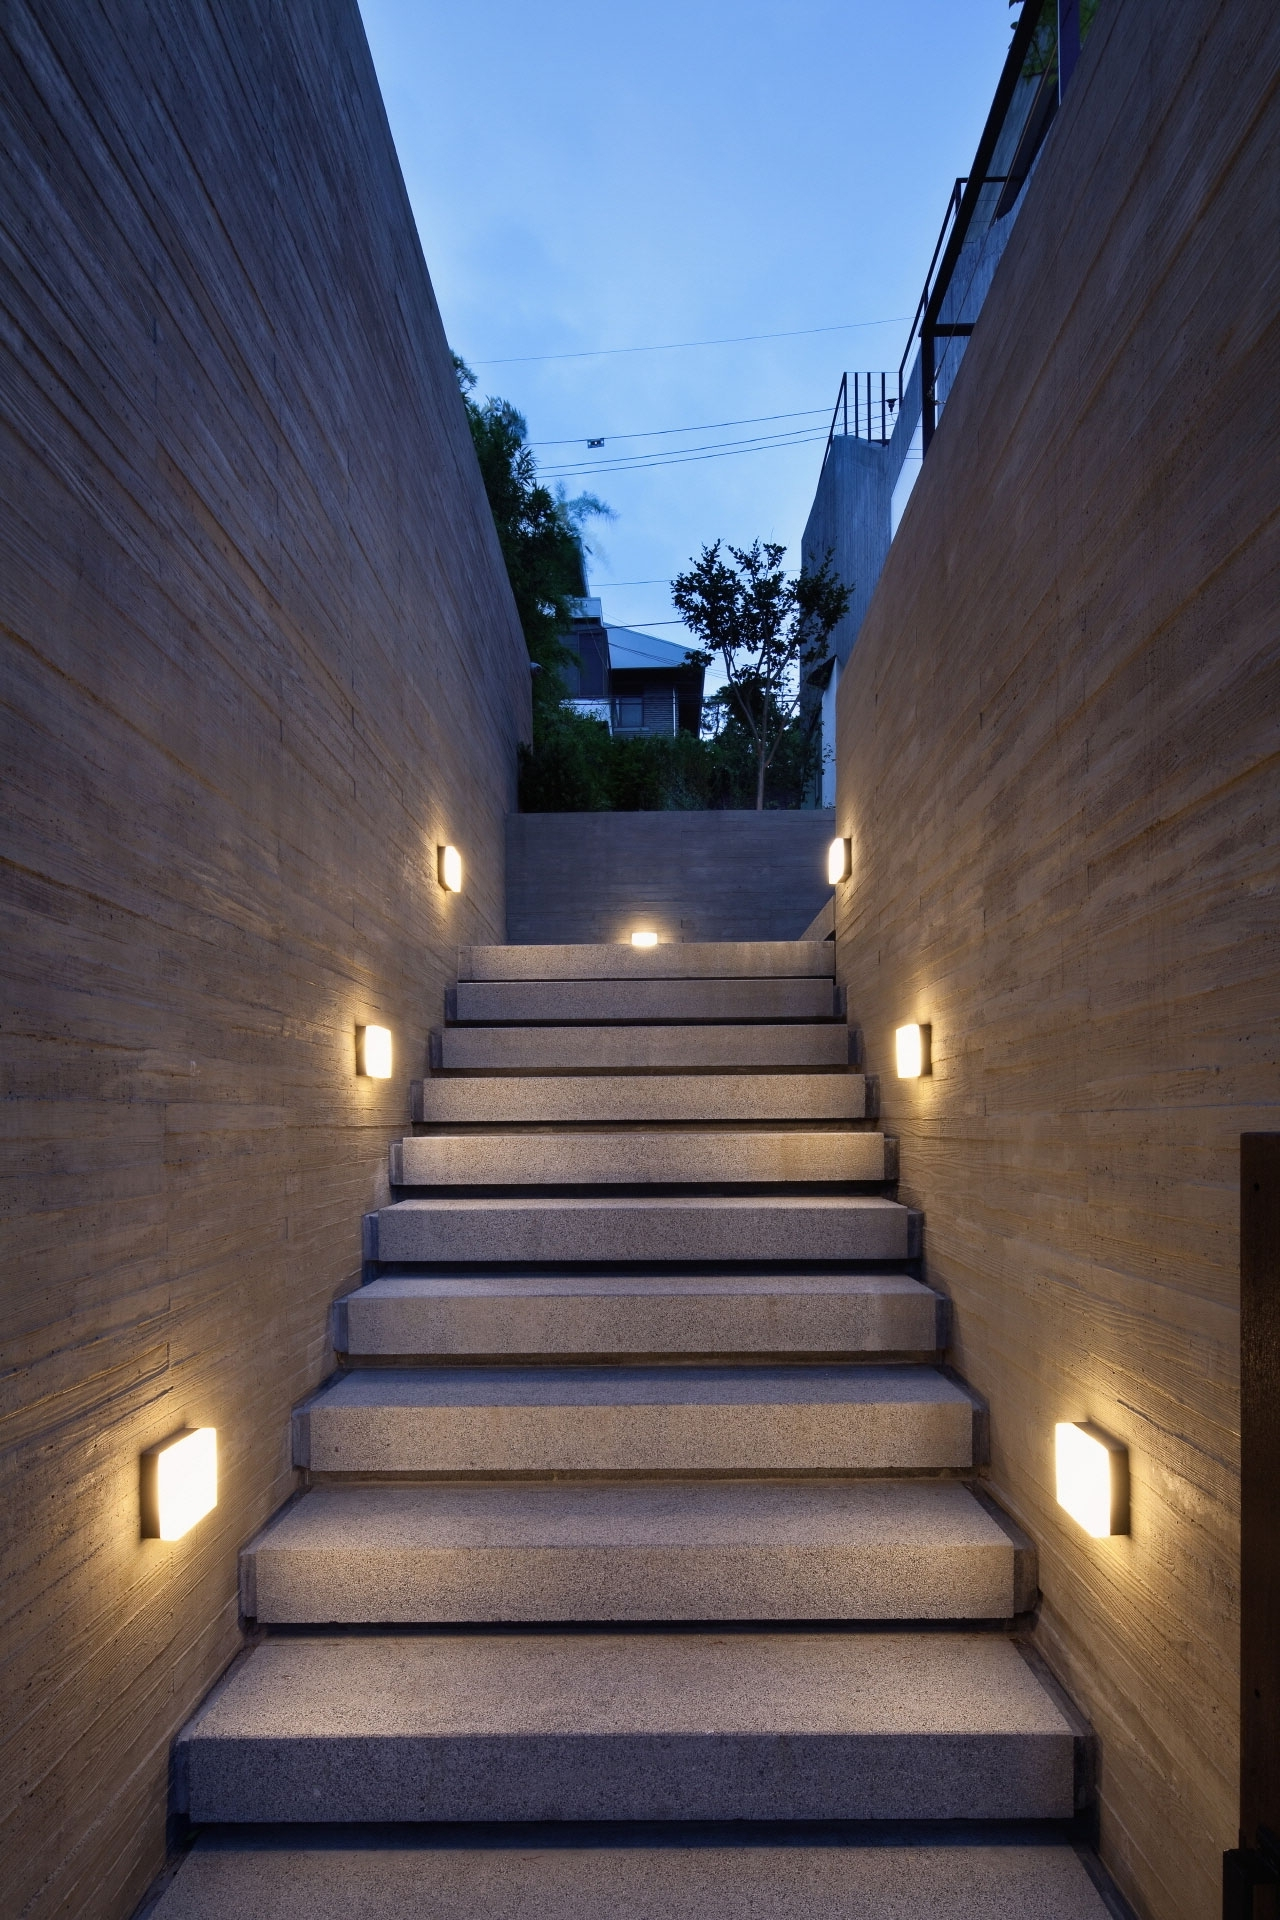 Residential Outdoor Wall Lighting Pertaining To Recent Lighting For Houses Outdoor Wall Lights For Houses Awesome Led Only (Gallery 20 of 20)